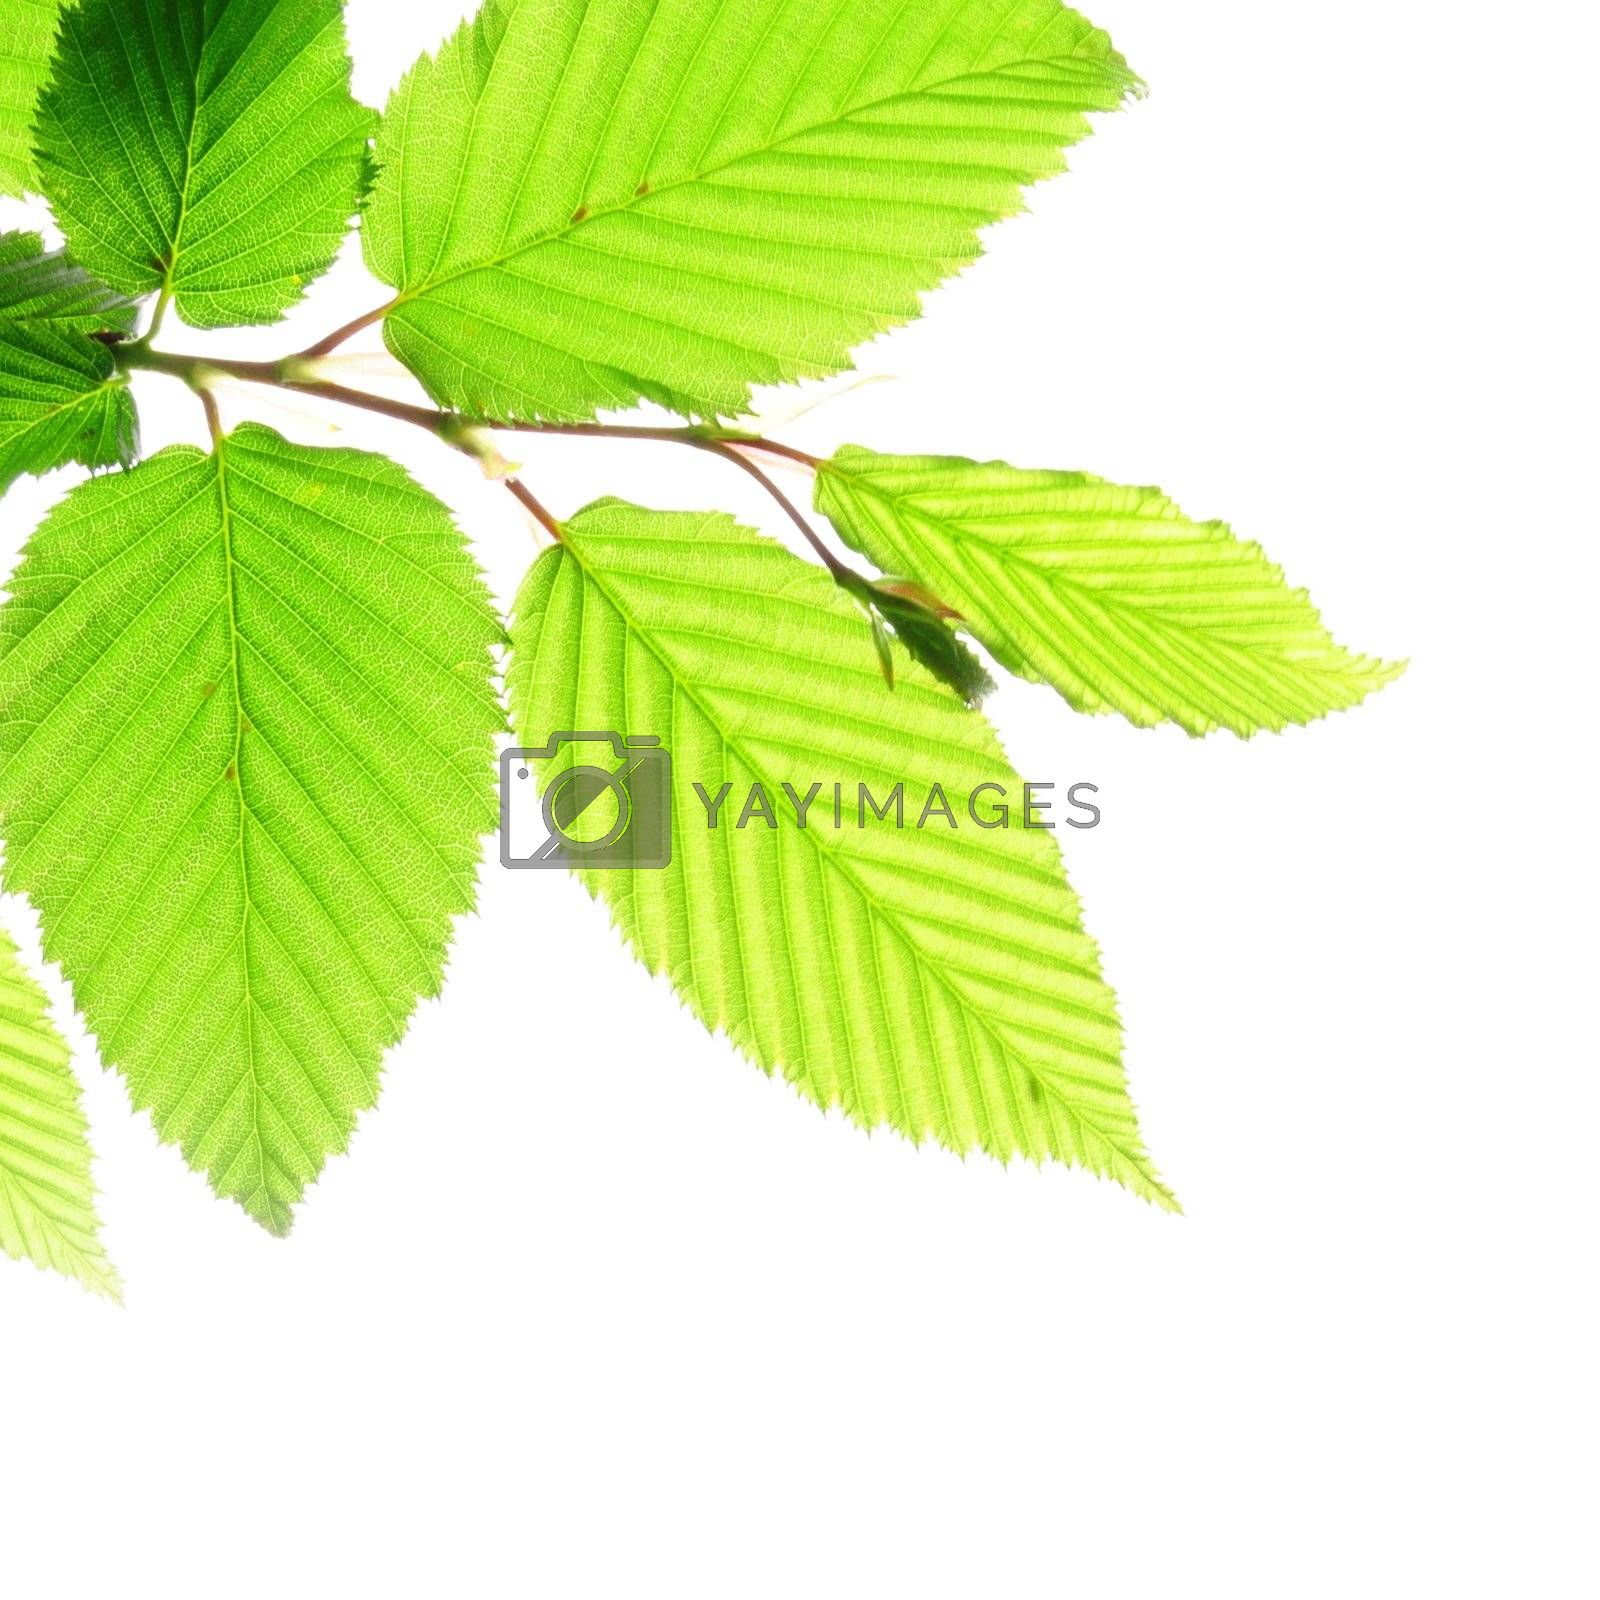 summer or nature concept with green leaf and sky